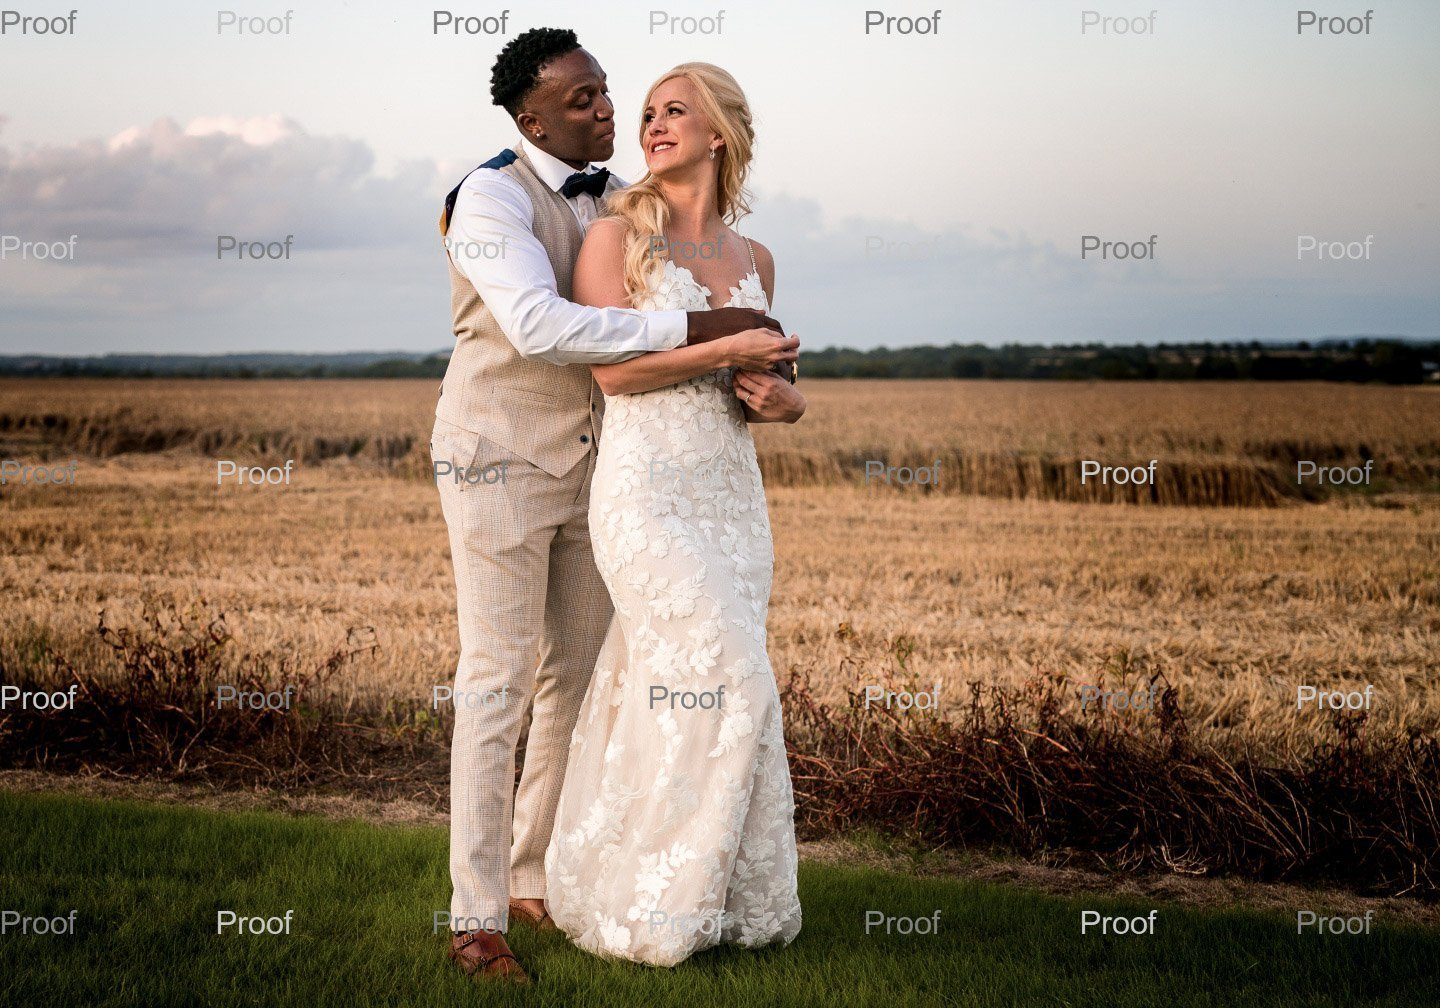 YFFUK Phil Endicott Mwasuku wedding albums a look inside from Norton Fields Atherstone 21